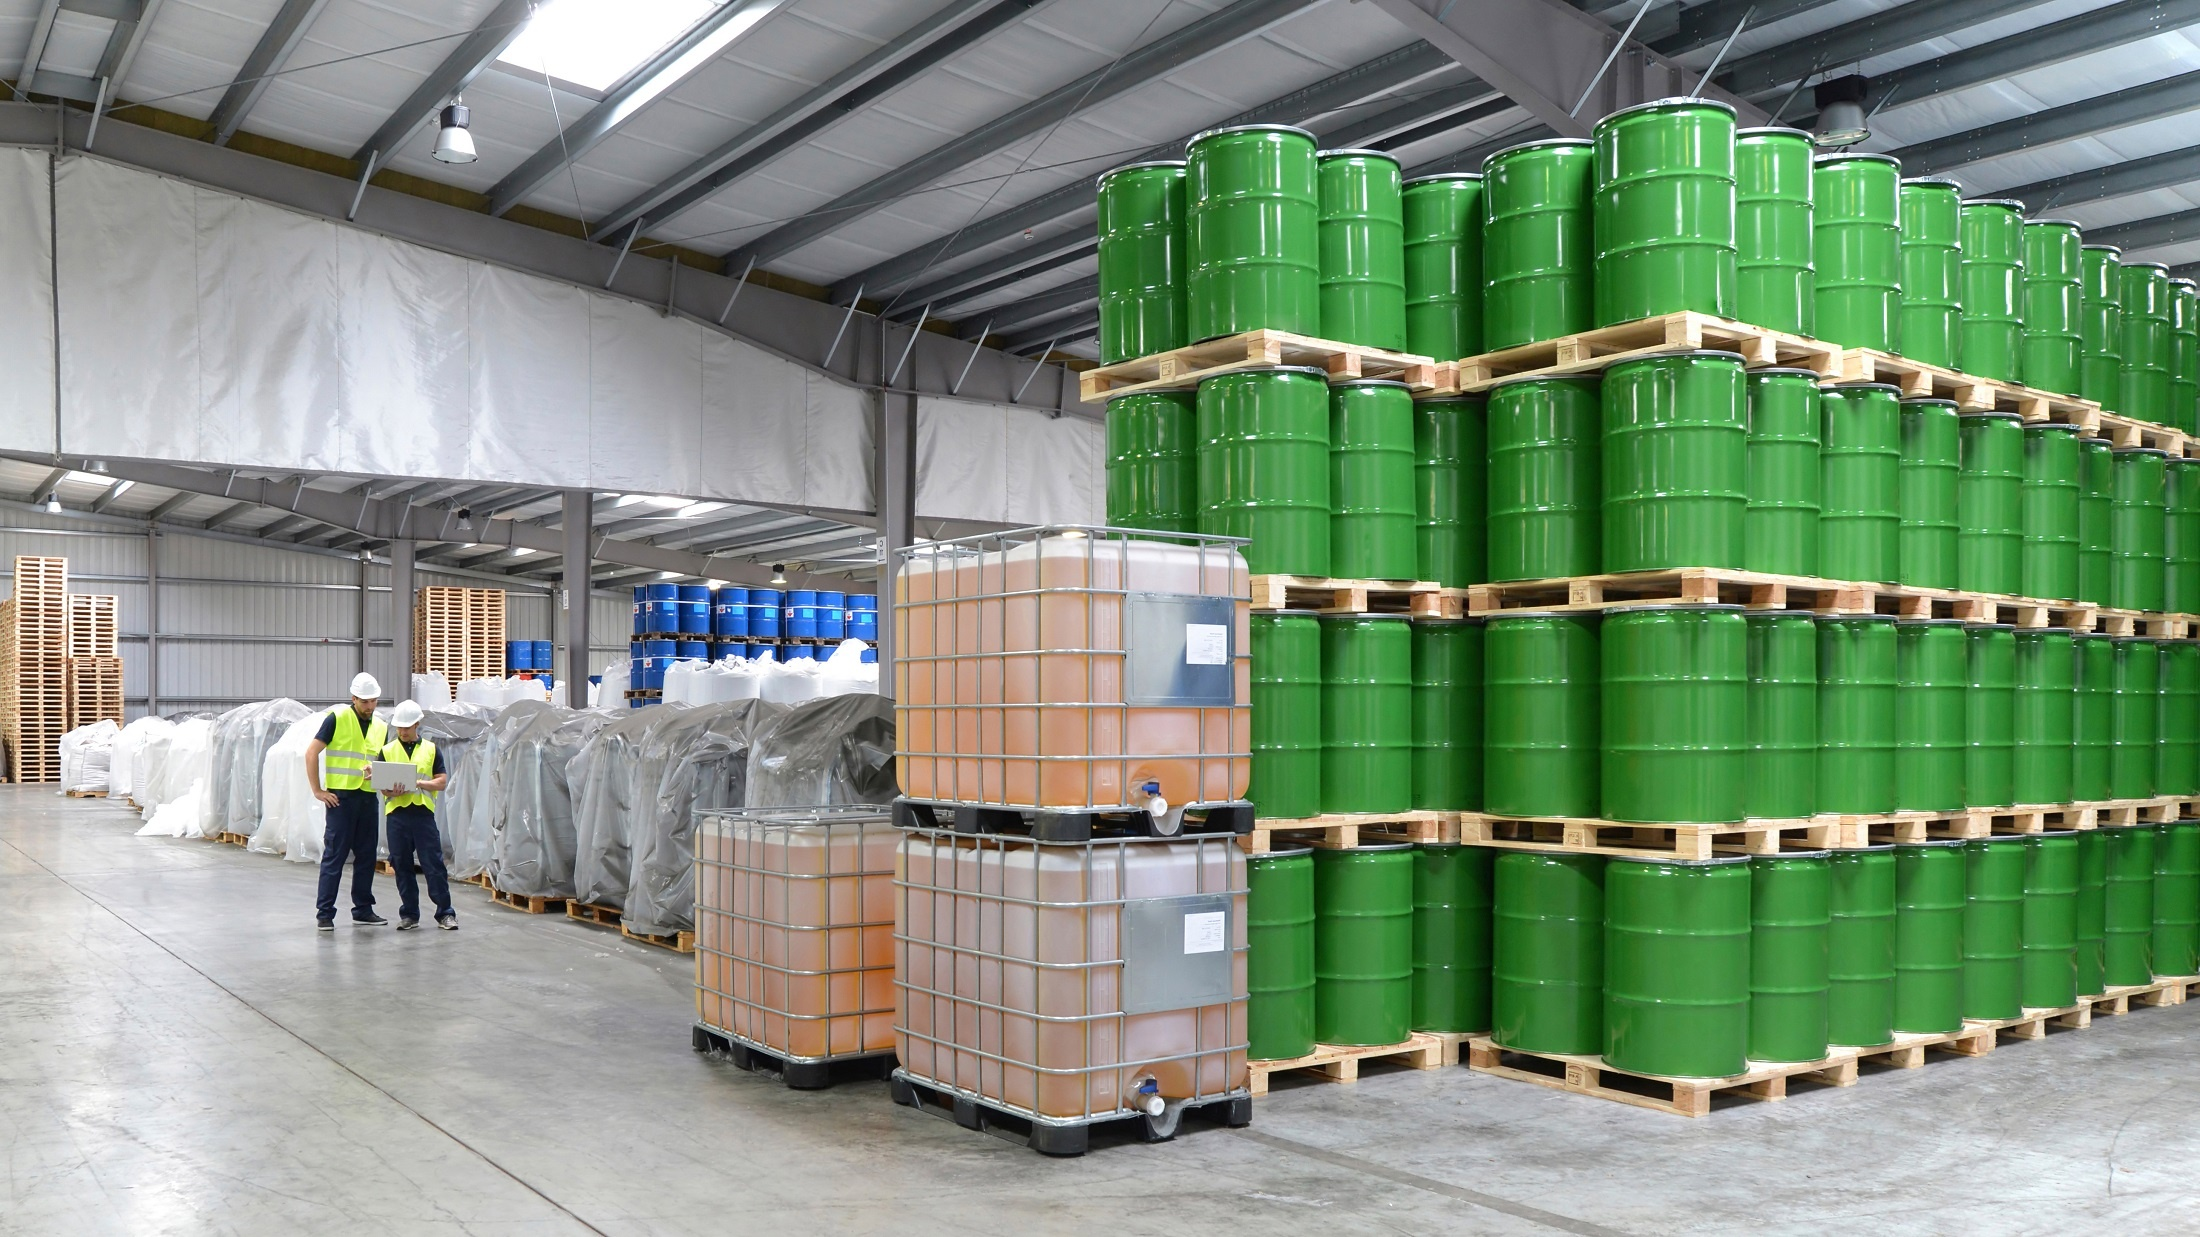 How to identify hazards in your flammable liquids handling and storage areas